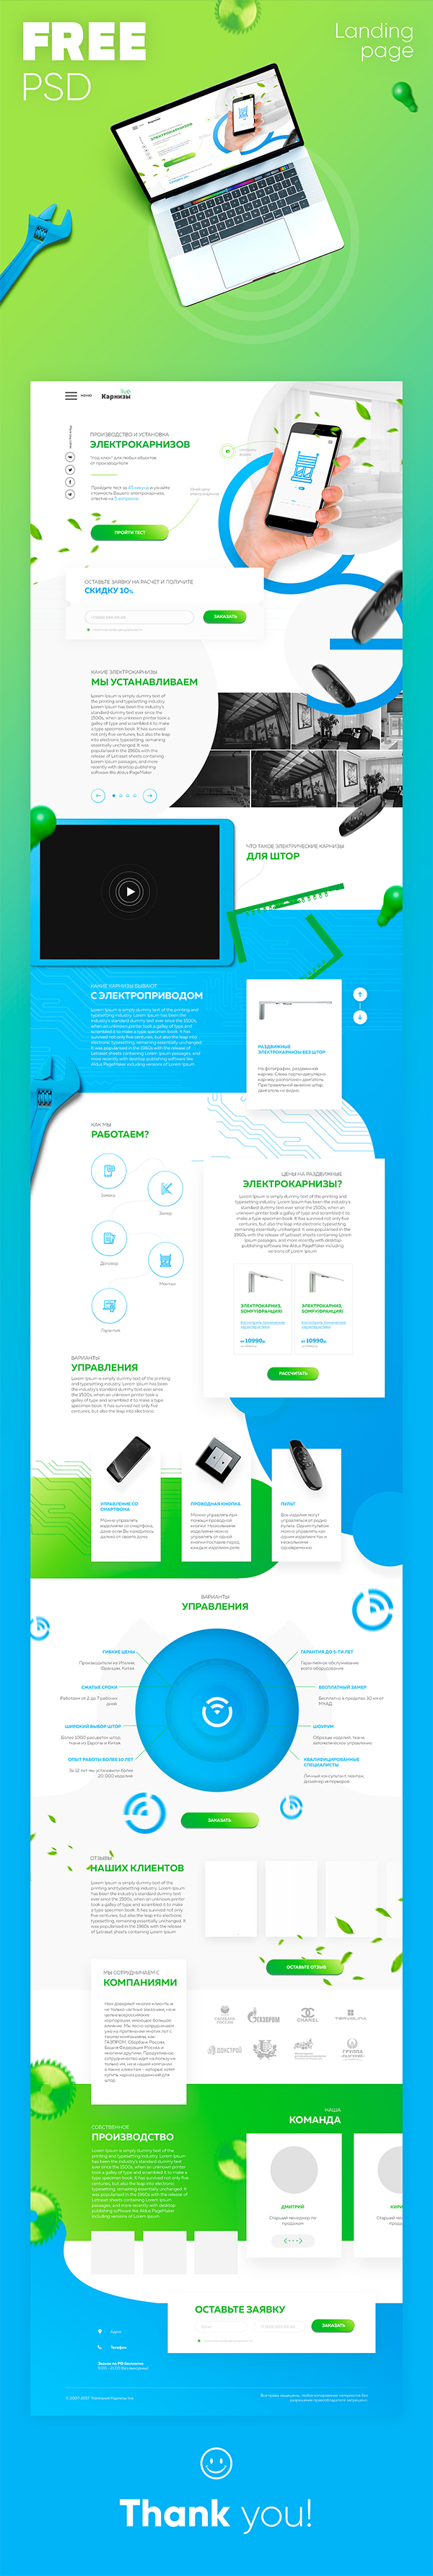 Free Download Awesome Landing Page Template (PSD)